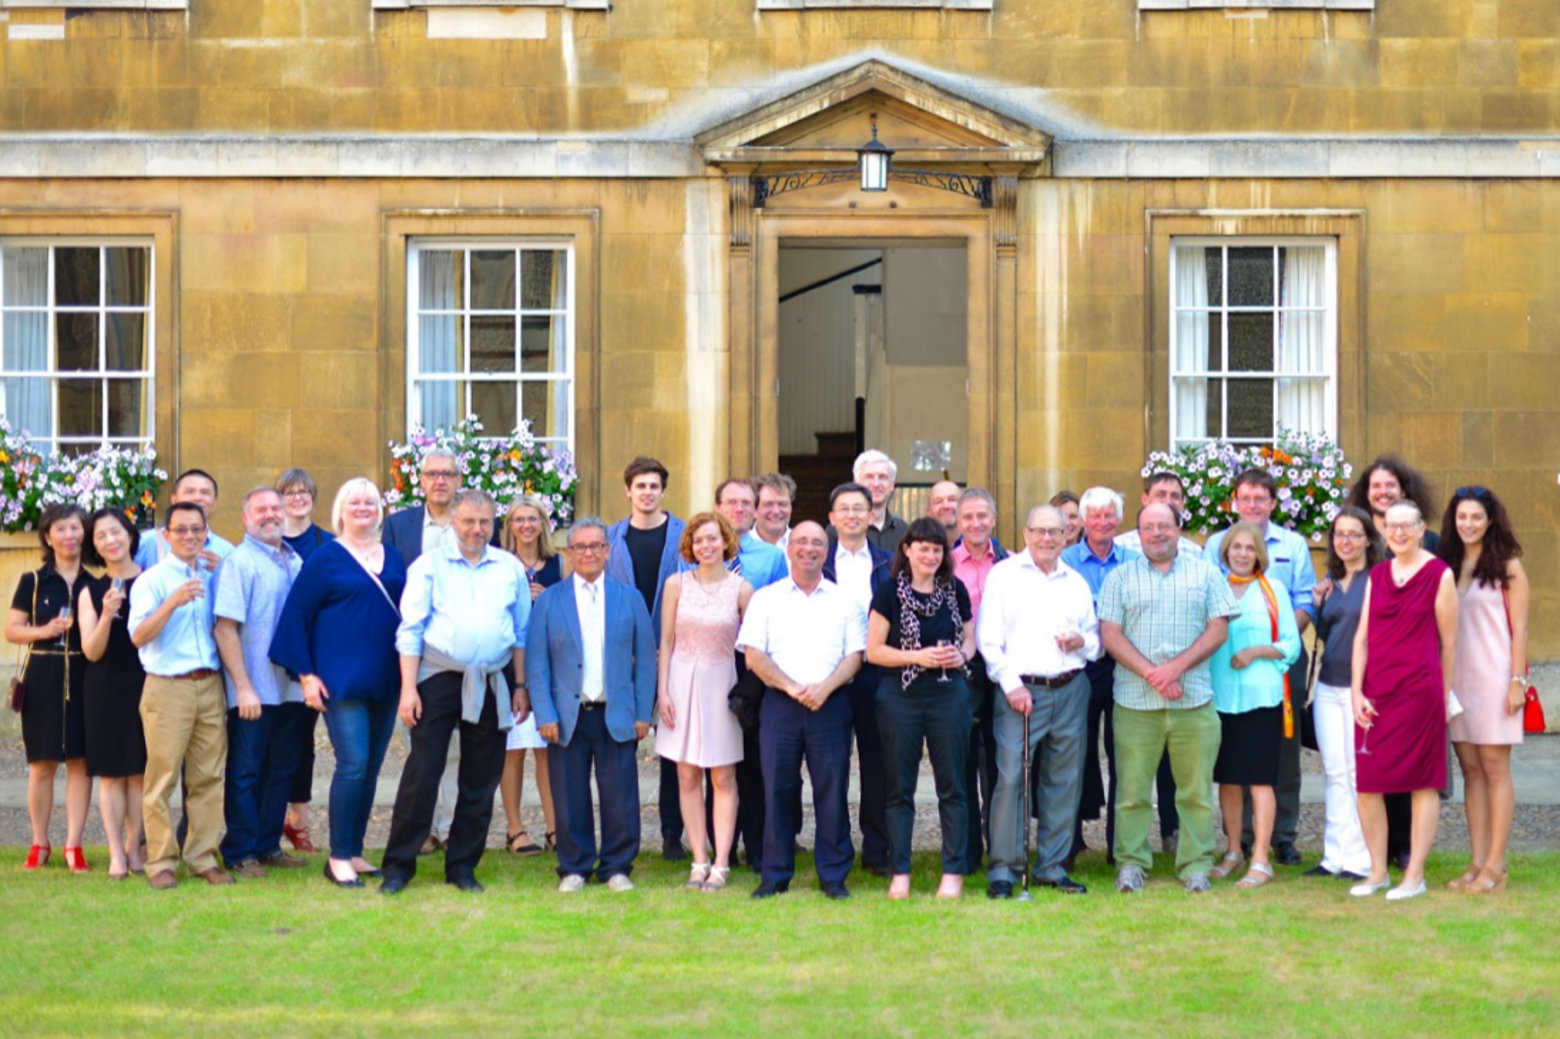 Professor Philip Roe celebrates 80th birthday at University of Cambridge conference.